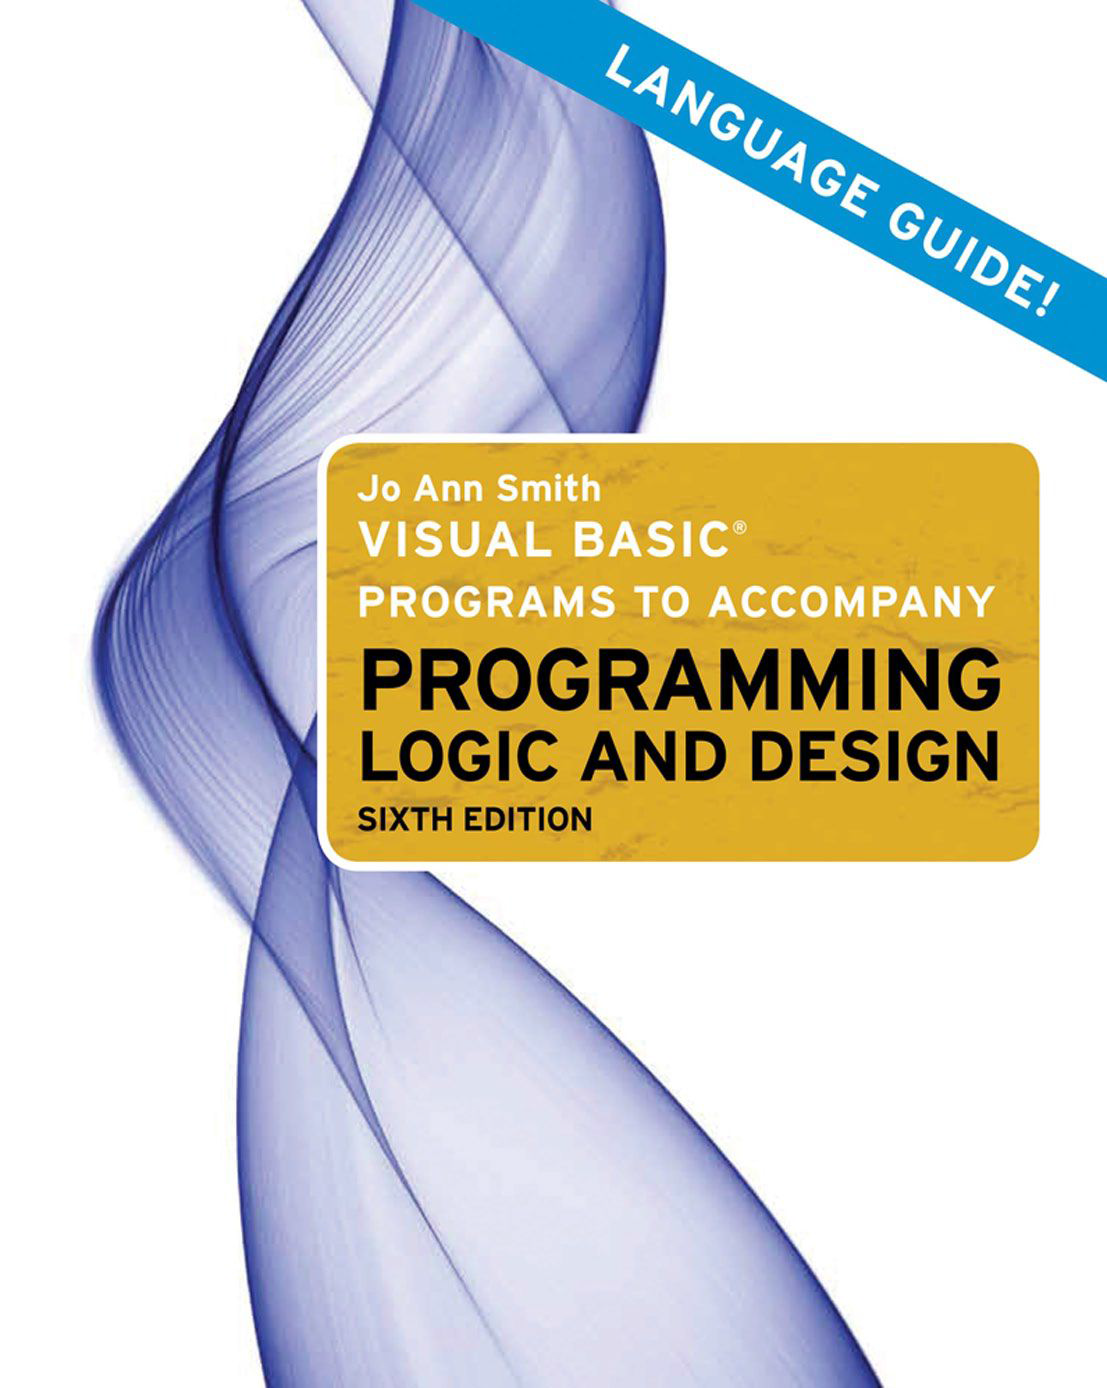 MICROSOFT® VISUAL BASIC® - PROGRAMMING LOGIC AND DESIGN : Download free pdf    http://freecomputerbooksforyou.blogspot.com/